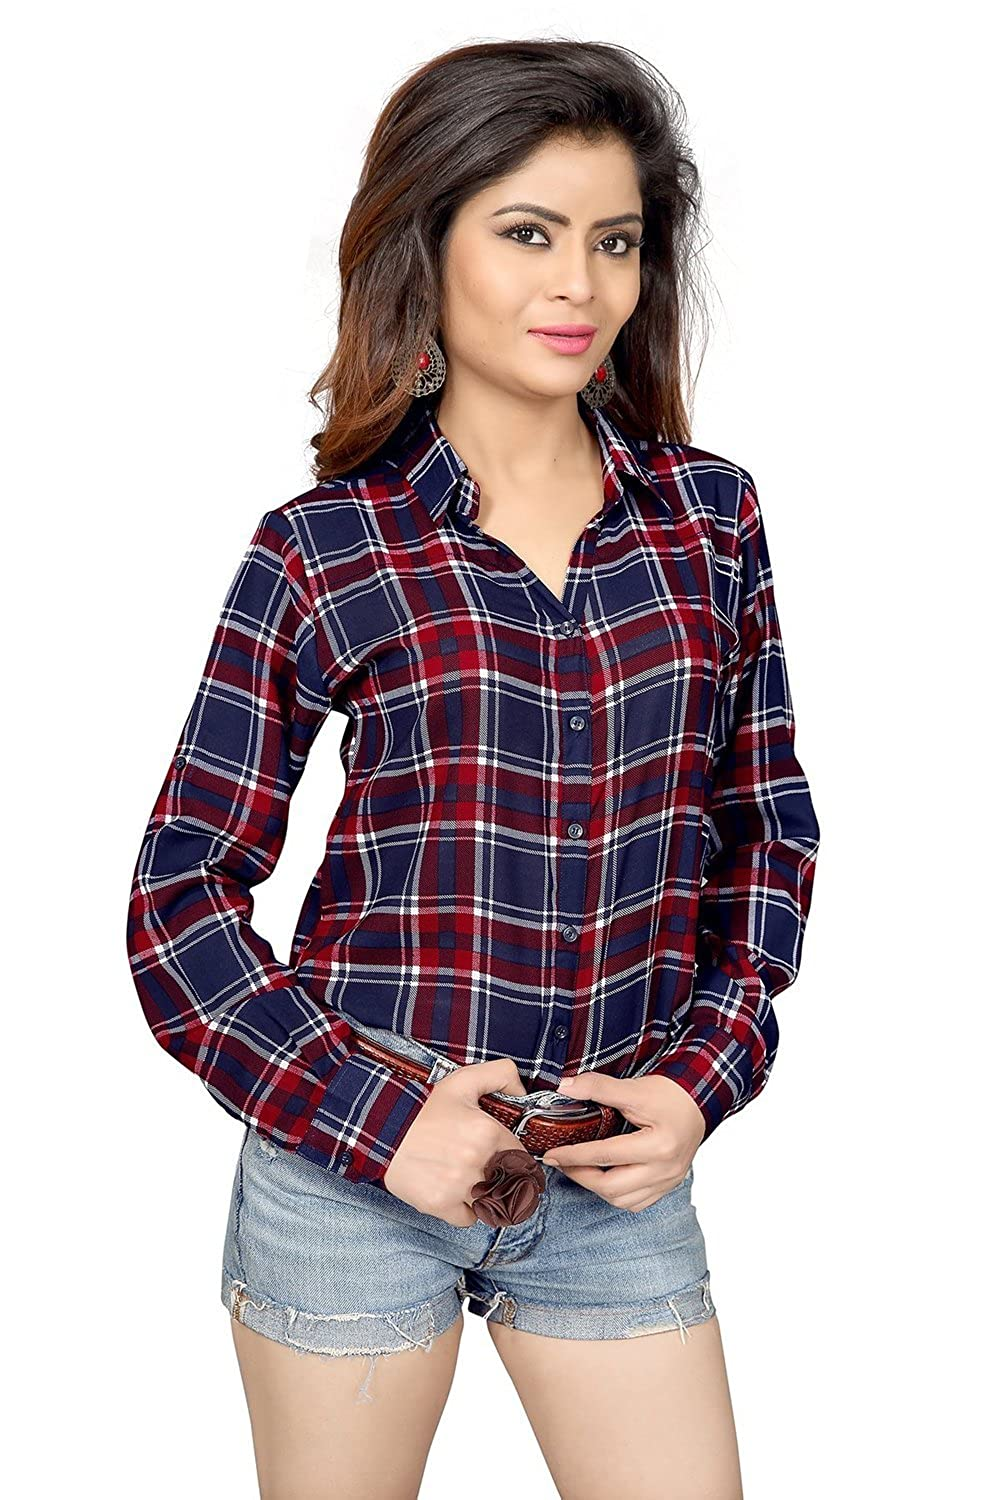 729cd13be Binny Creation Women's Art Crepe Shirt (BT1002-CH-15): Amazon.in: Clothing  & Accessories